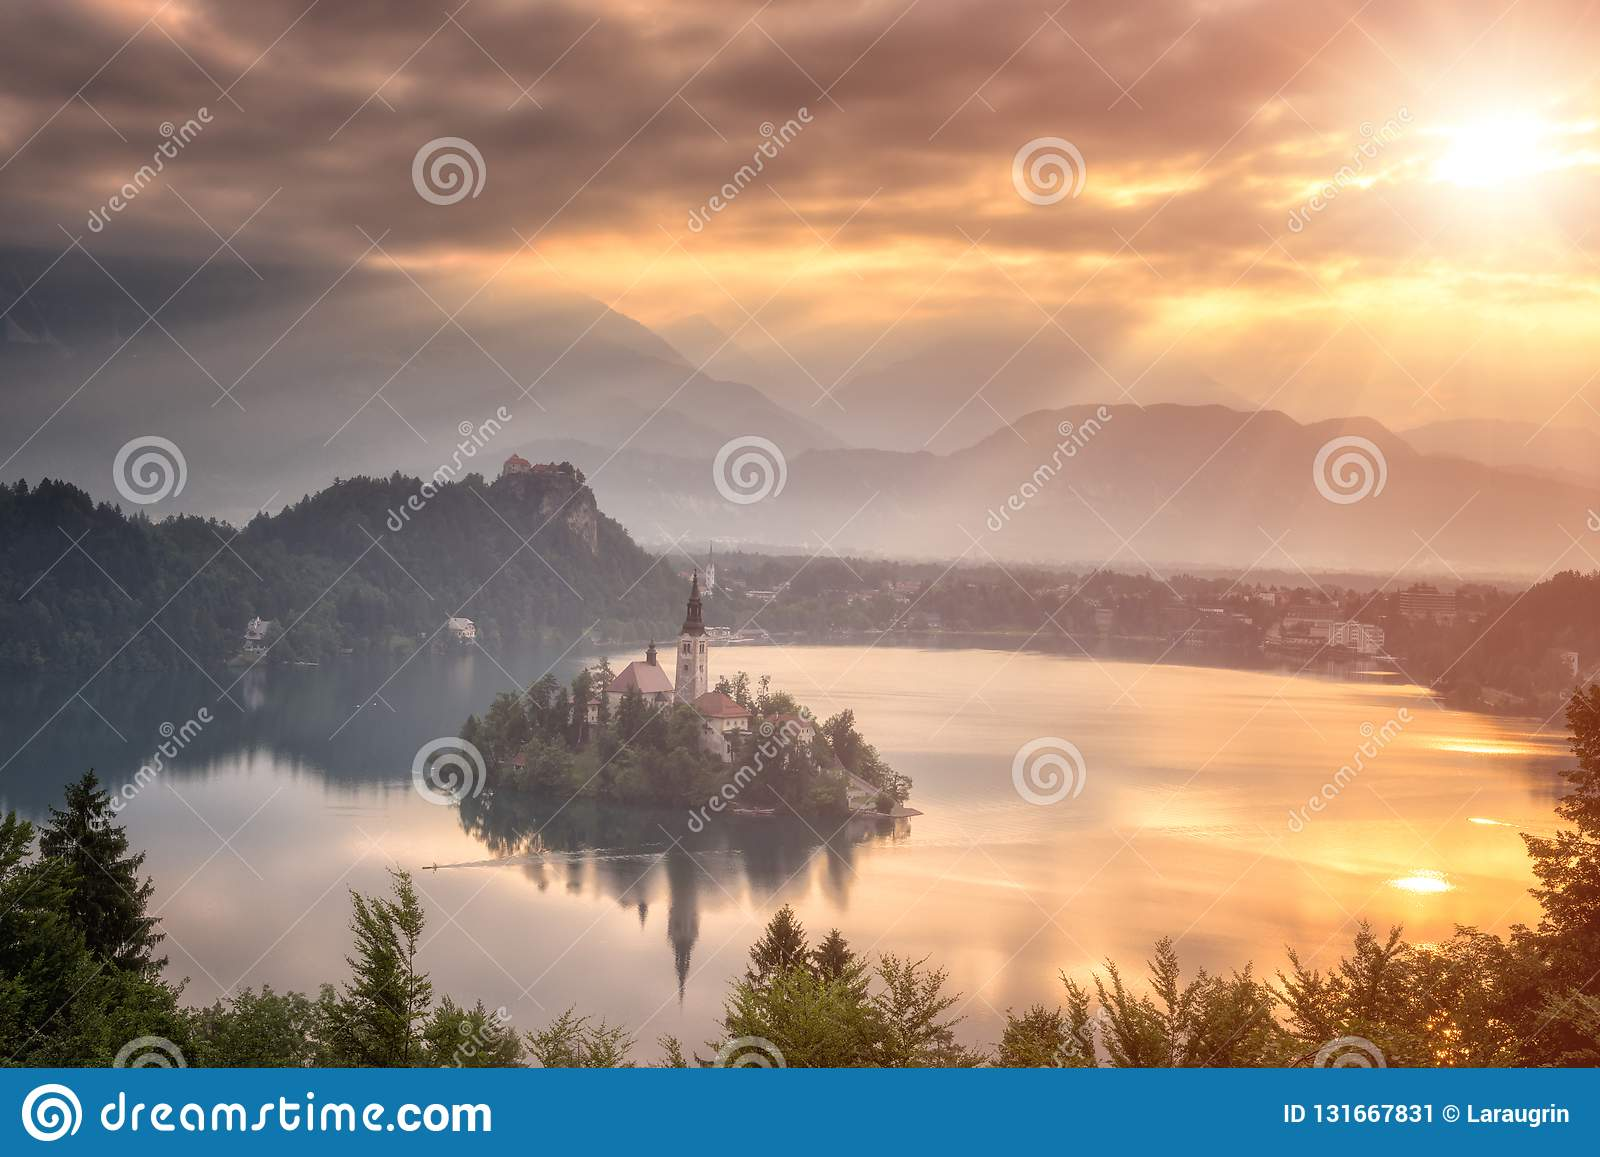 Golden sunrise over famous alpine lake Bled with Assumption of Mary pilgrimage church on the island, Slovenia